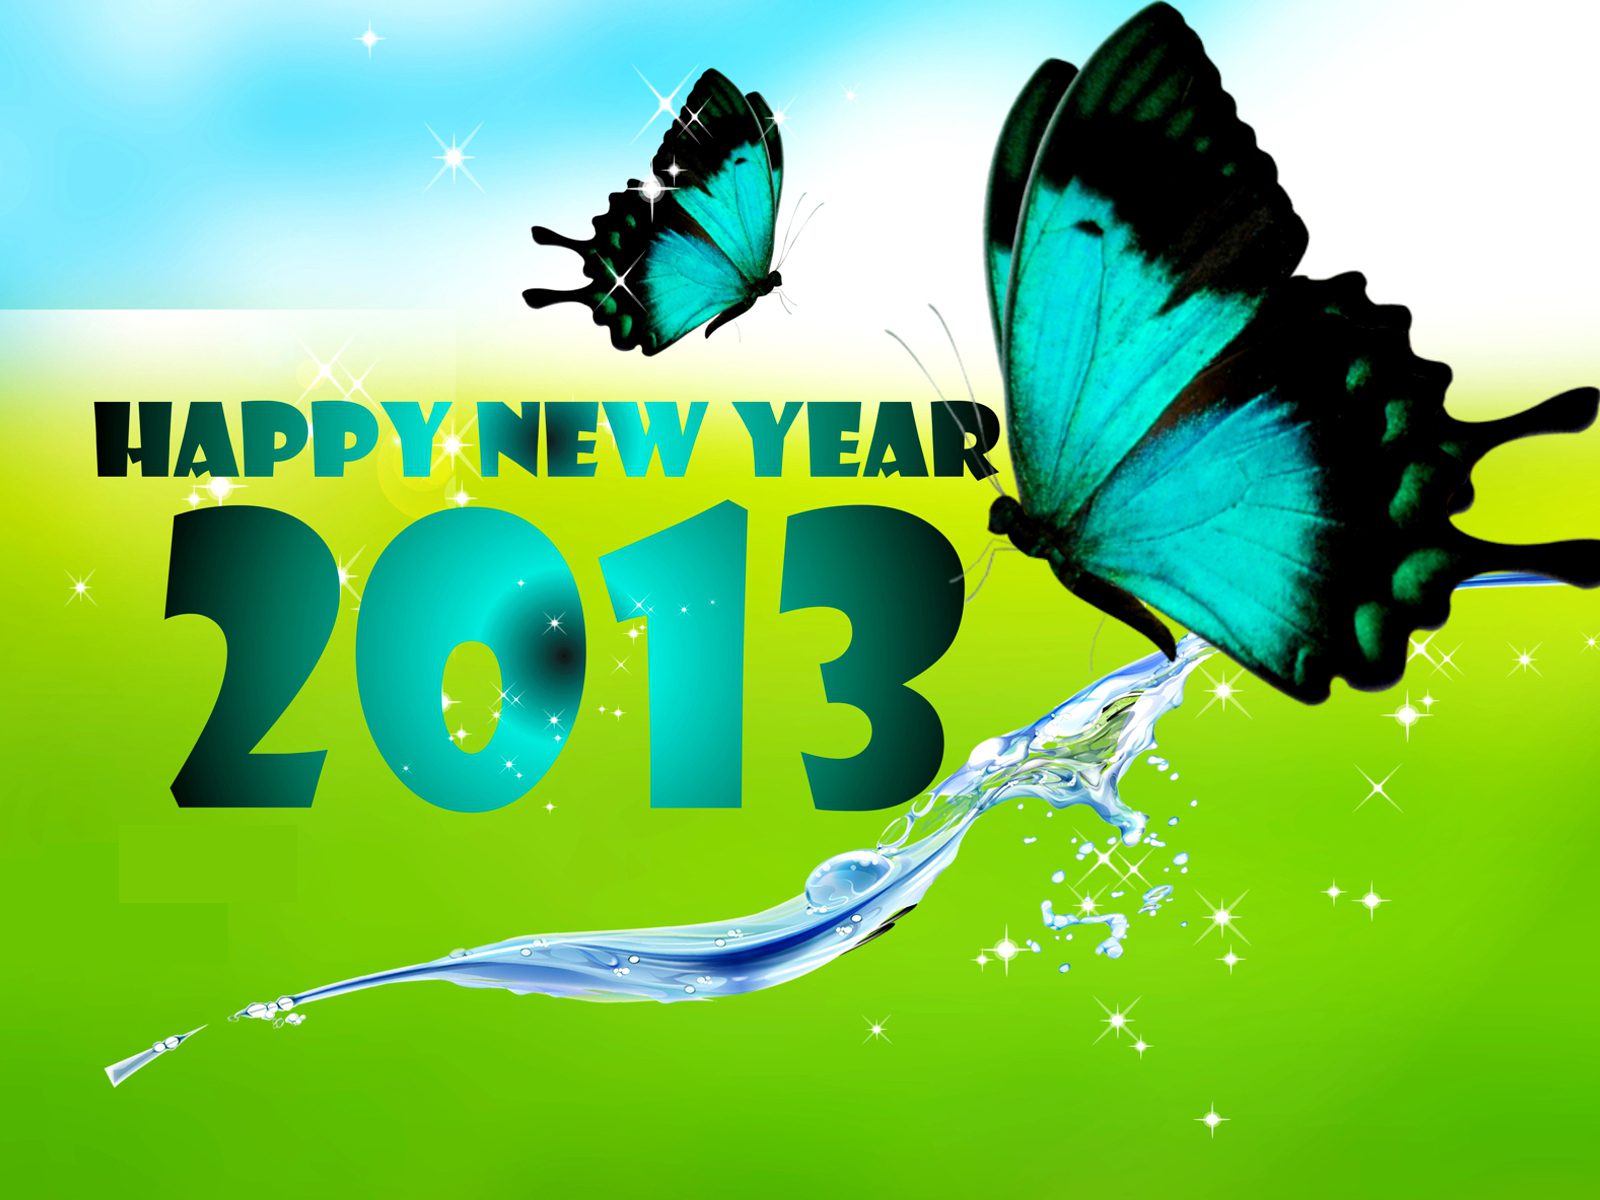 wallpaper brand new year hd wallpapers 2013